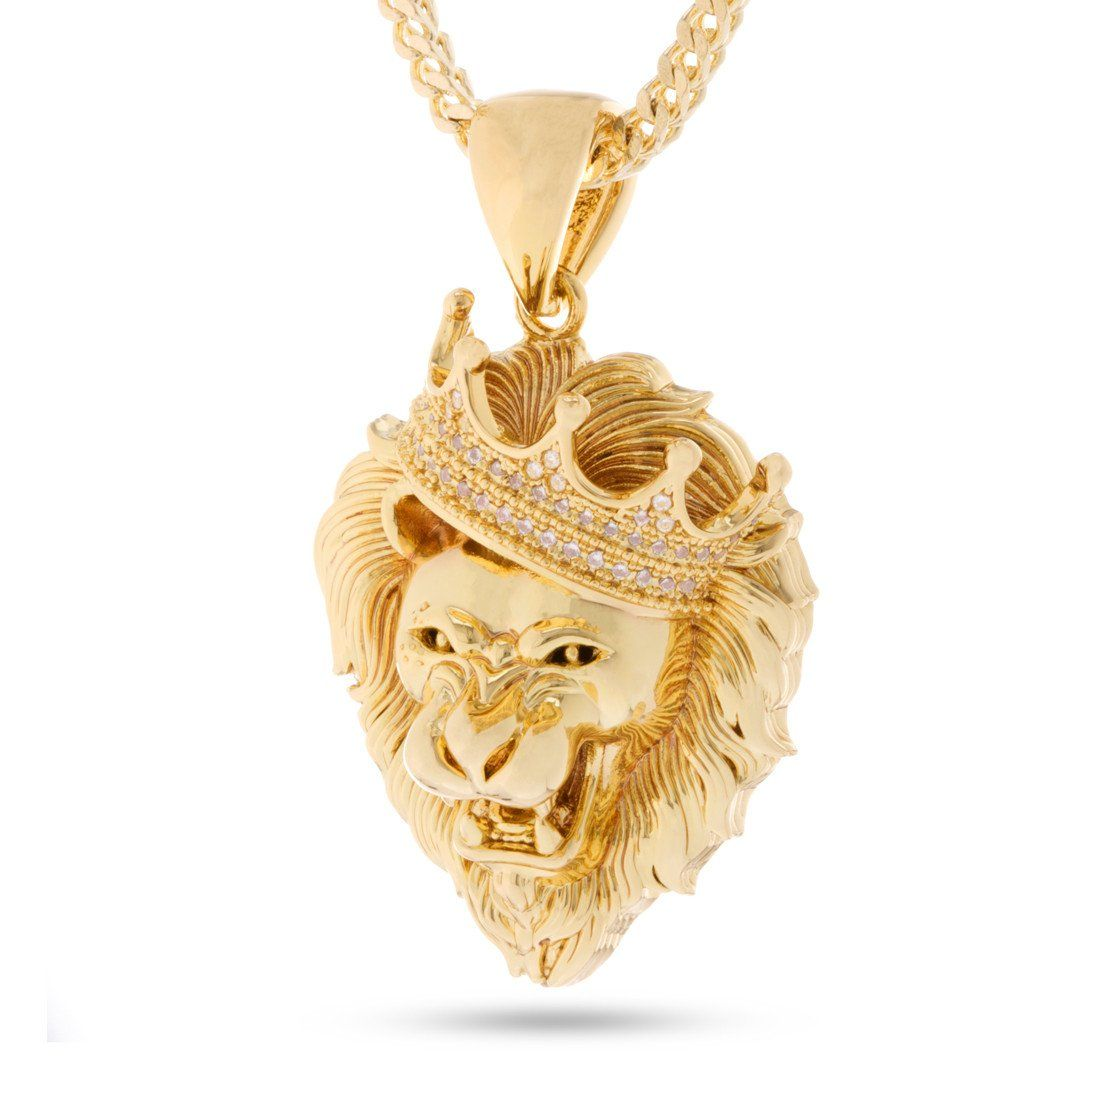 K Gold Roaring Lion CZ Necklace Roaring lion Lions and Gold